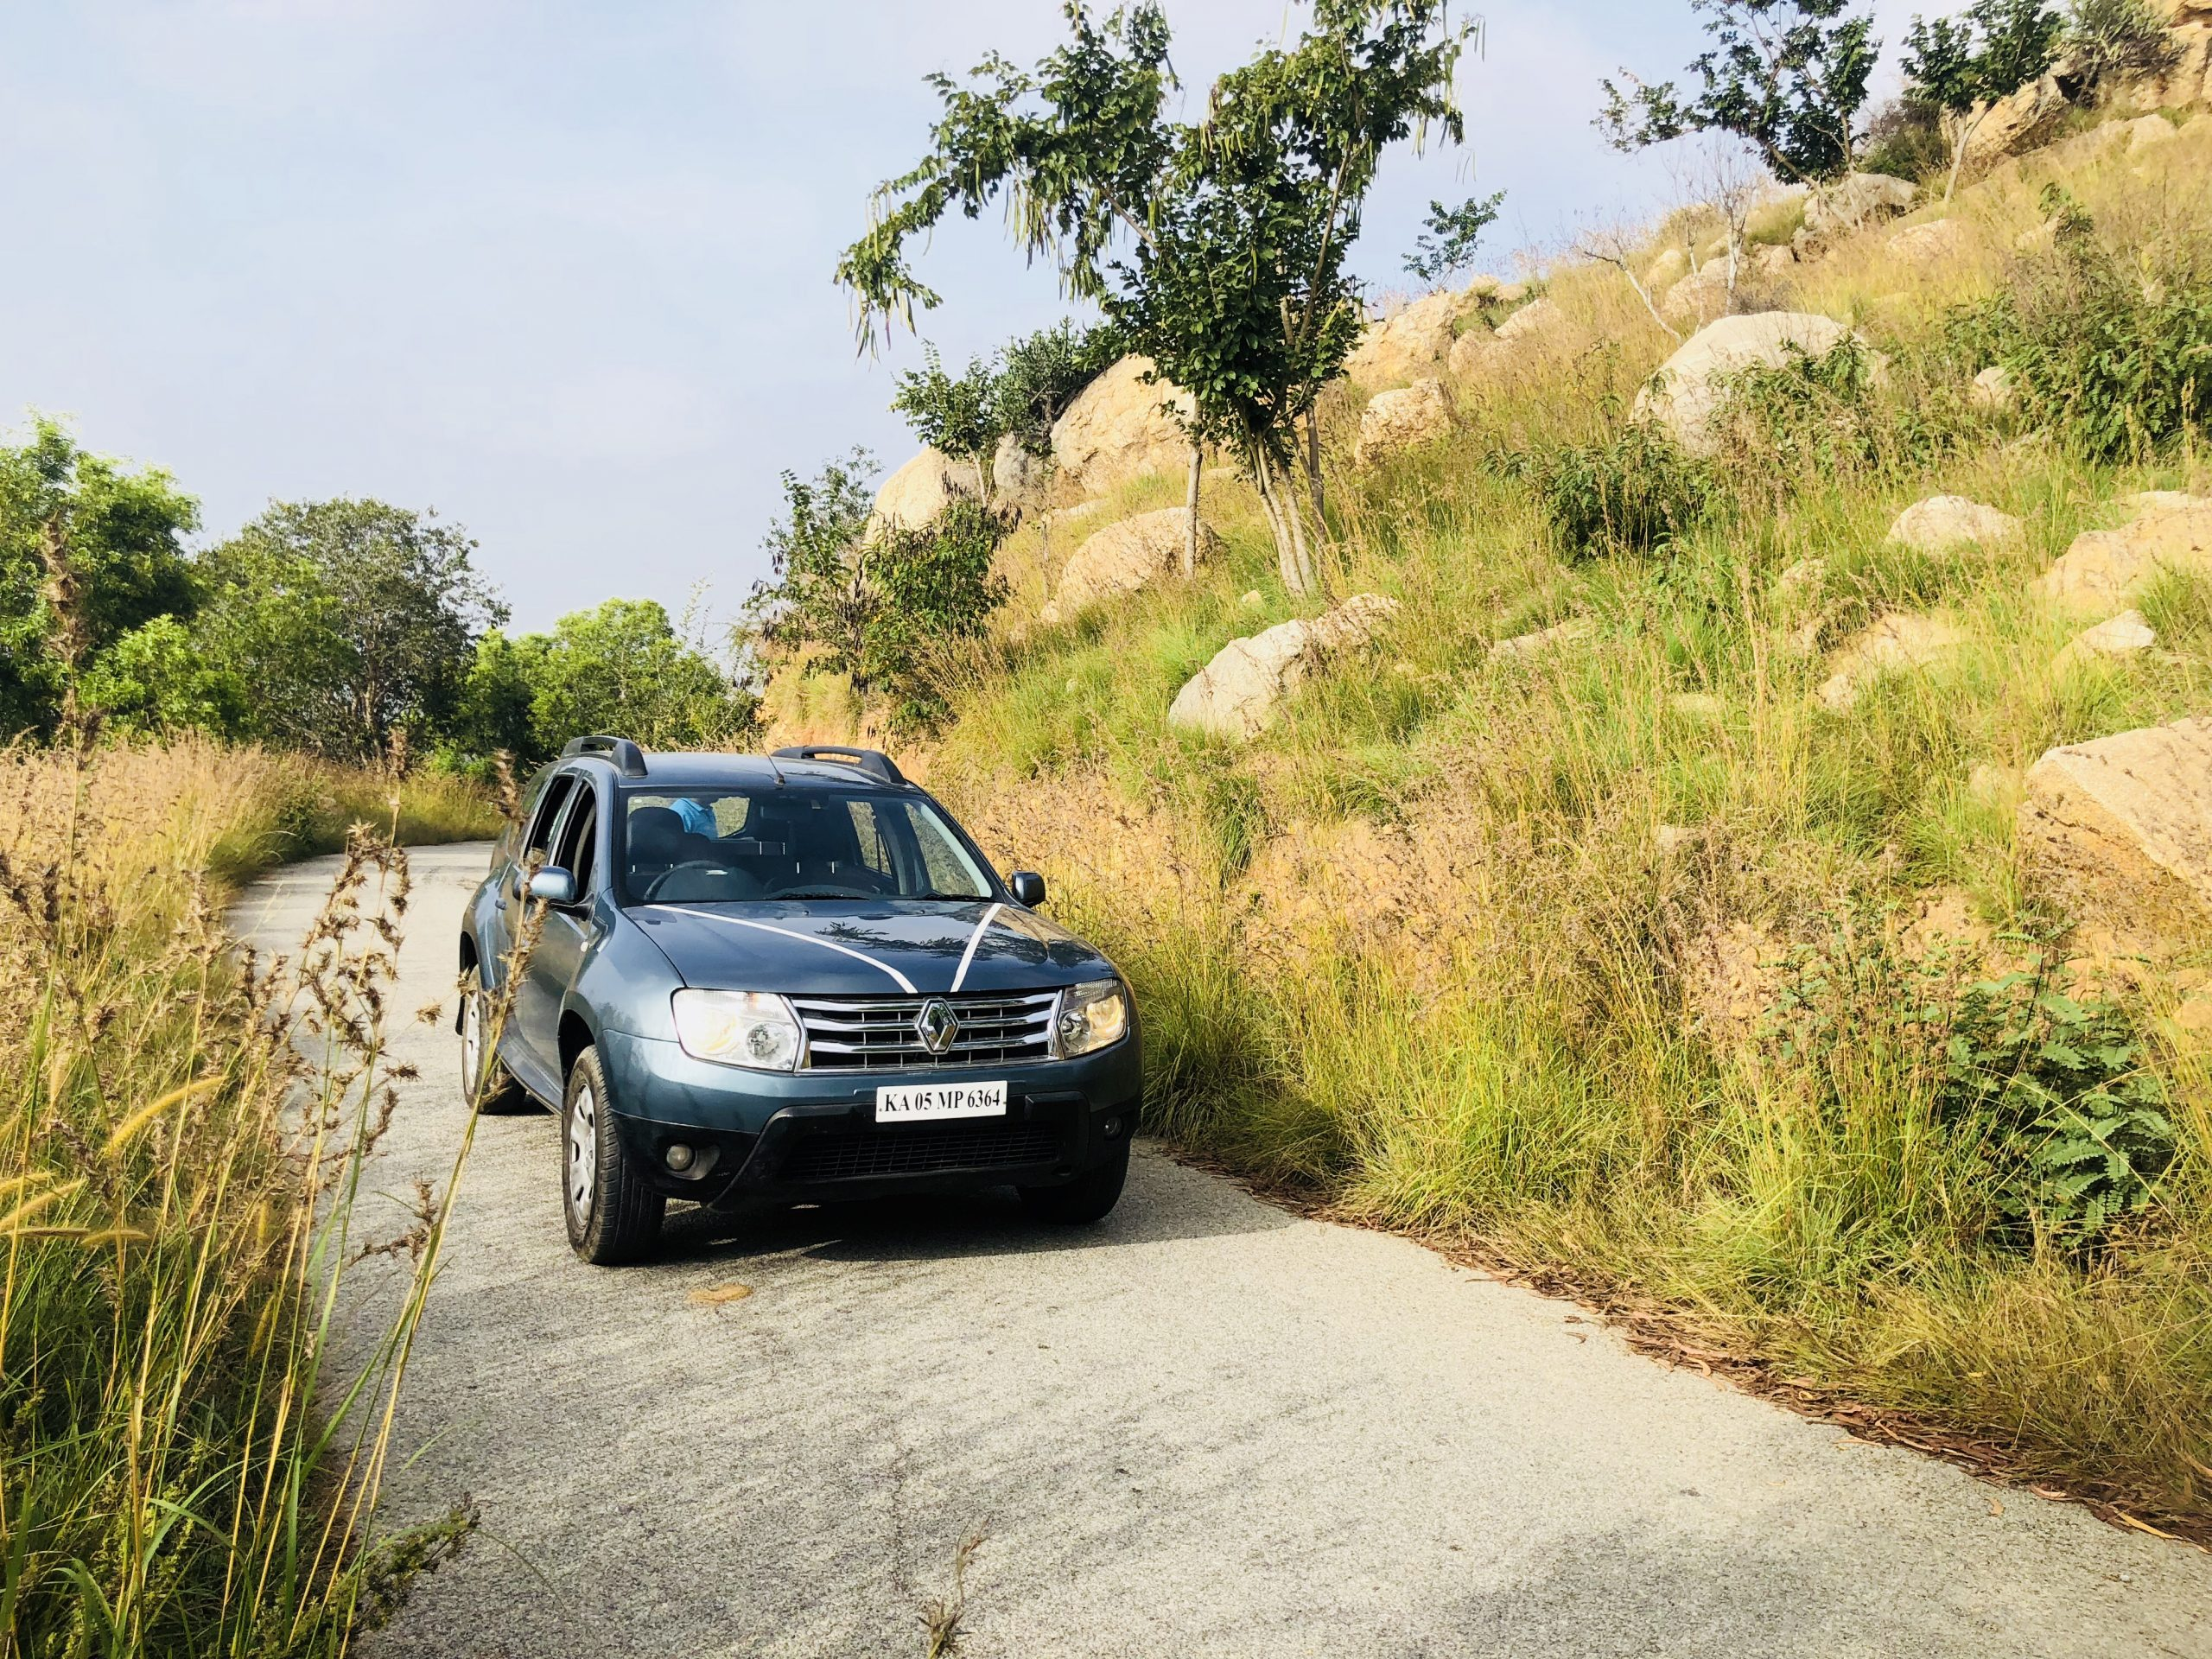 Renault Duster car on a dirt road